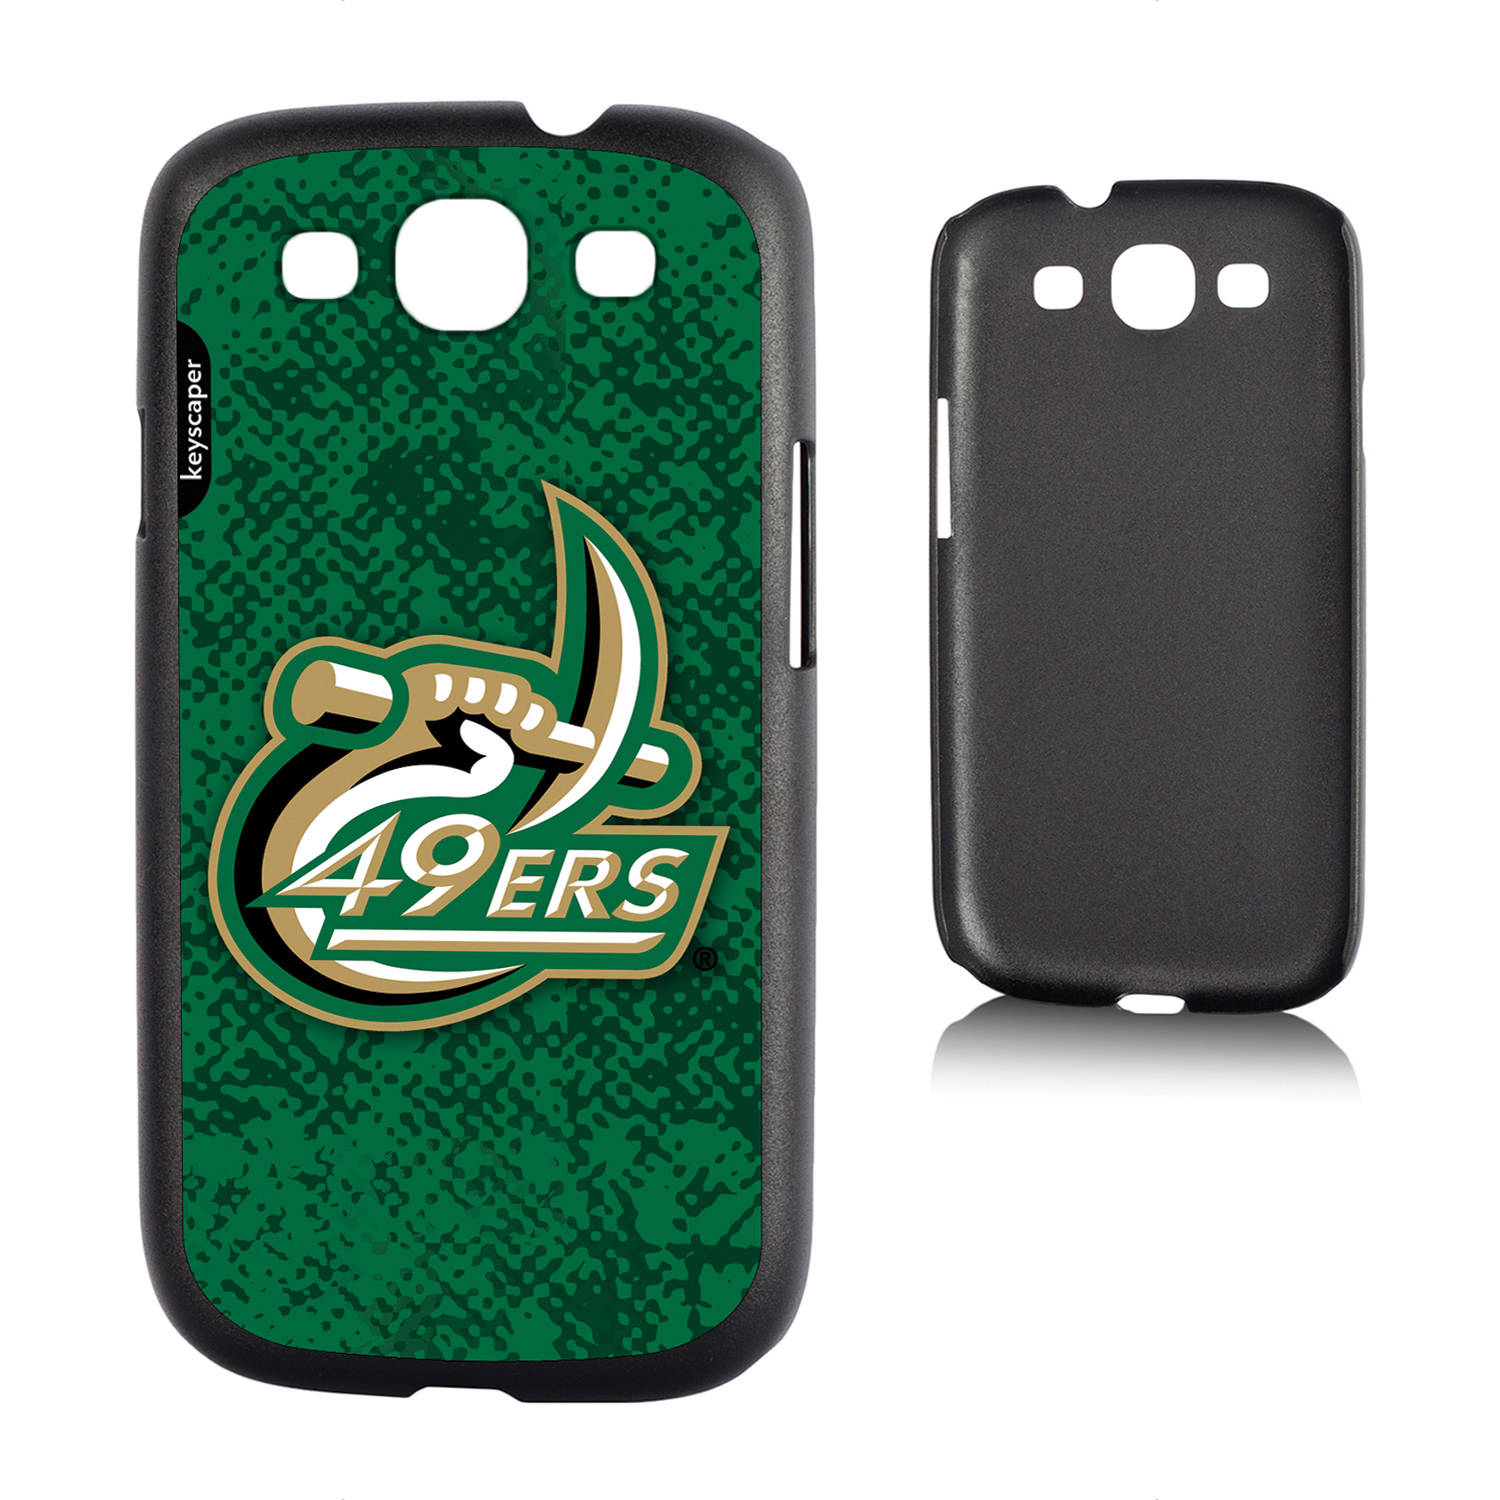 North Carolina Charlotte 49ers Galaxy S3 Slim Case